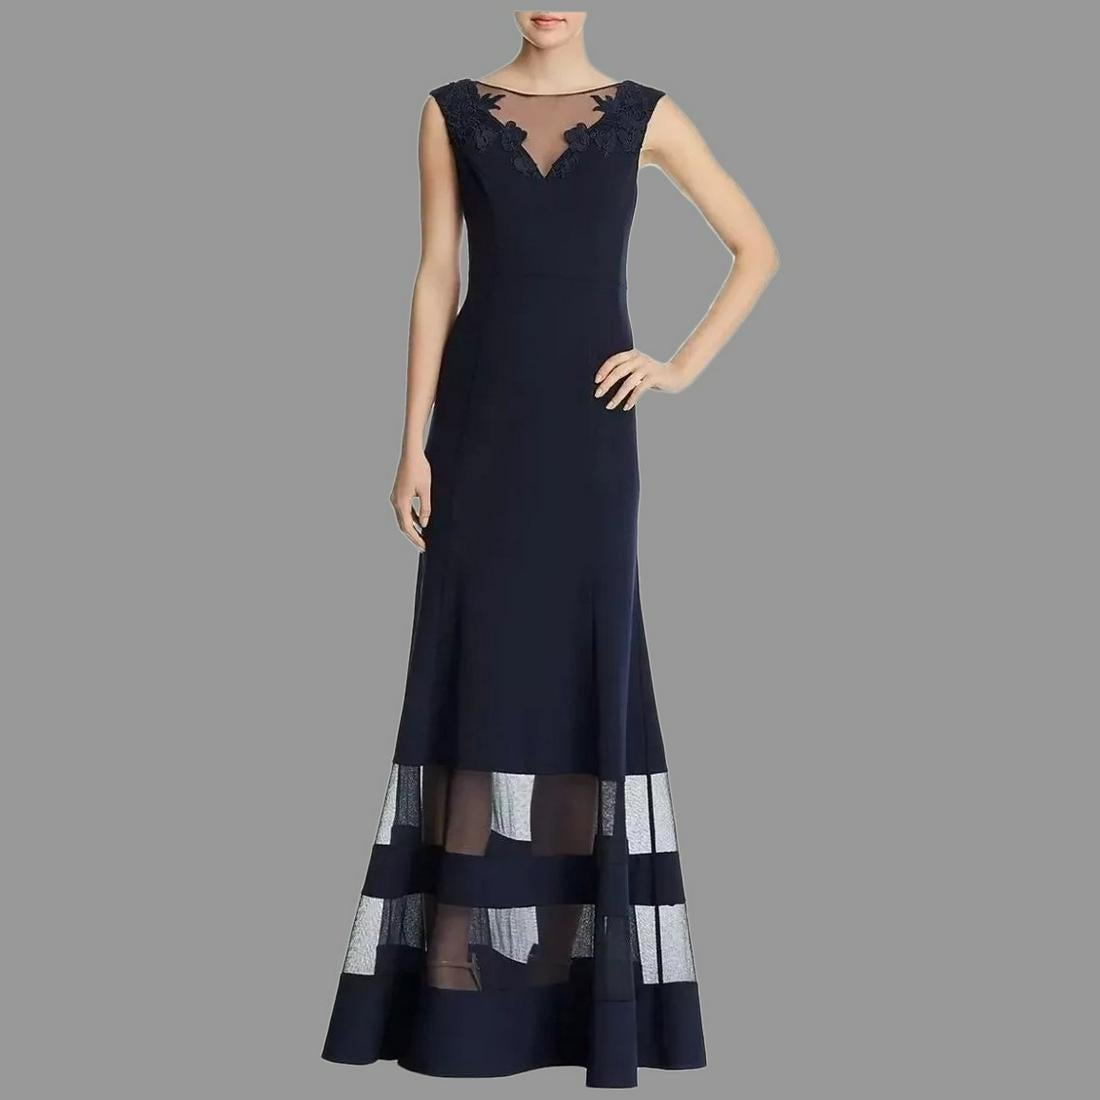 Lace overlay Trumpet formal Evening Gown Retailed $530